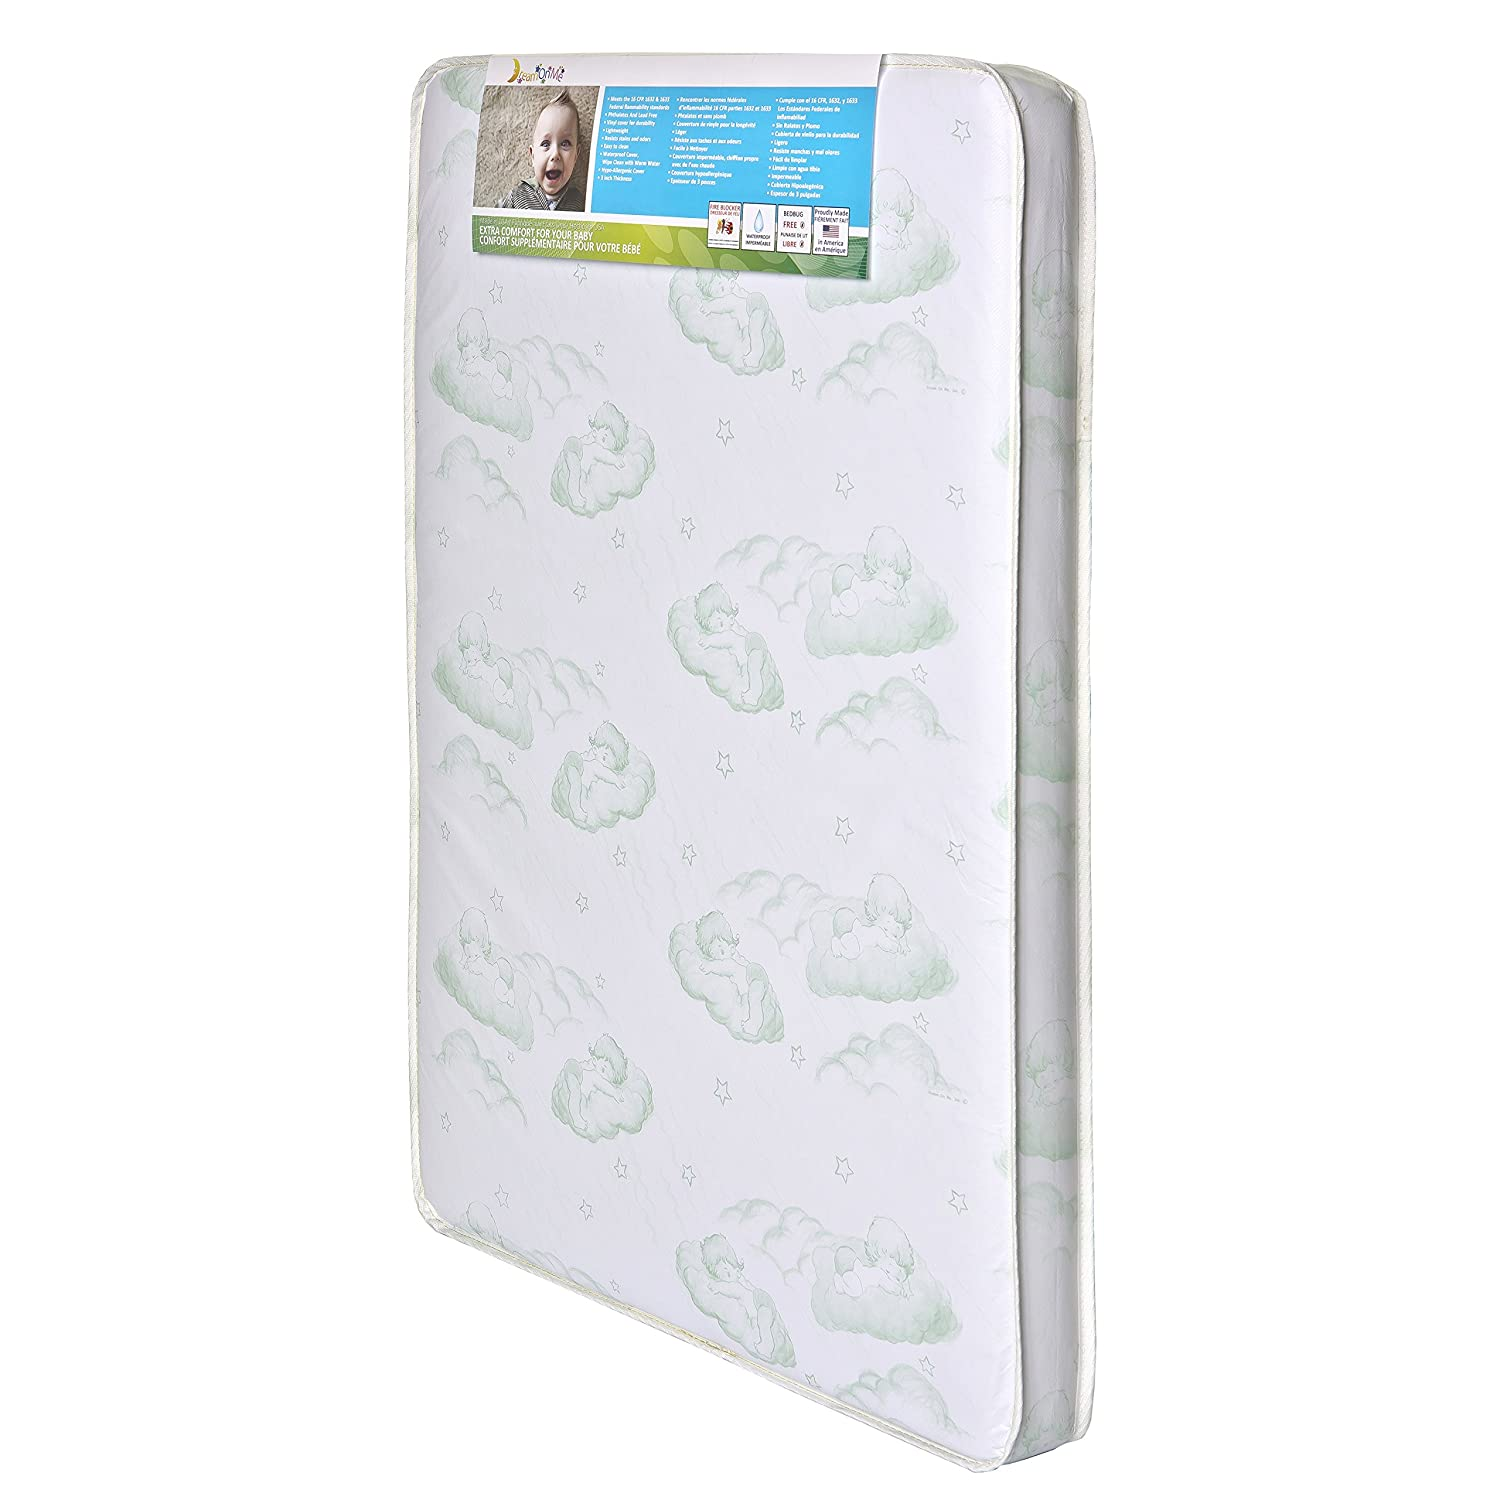 cribs the sheep earthmother earth ie crib natural lullaby mattress thelittlegreensheepnaturalcribmattress little green